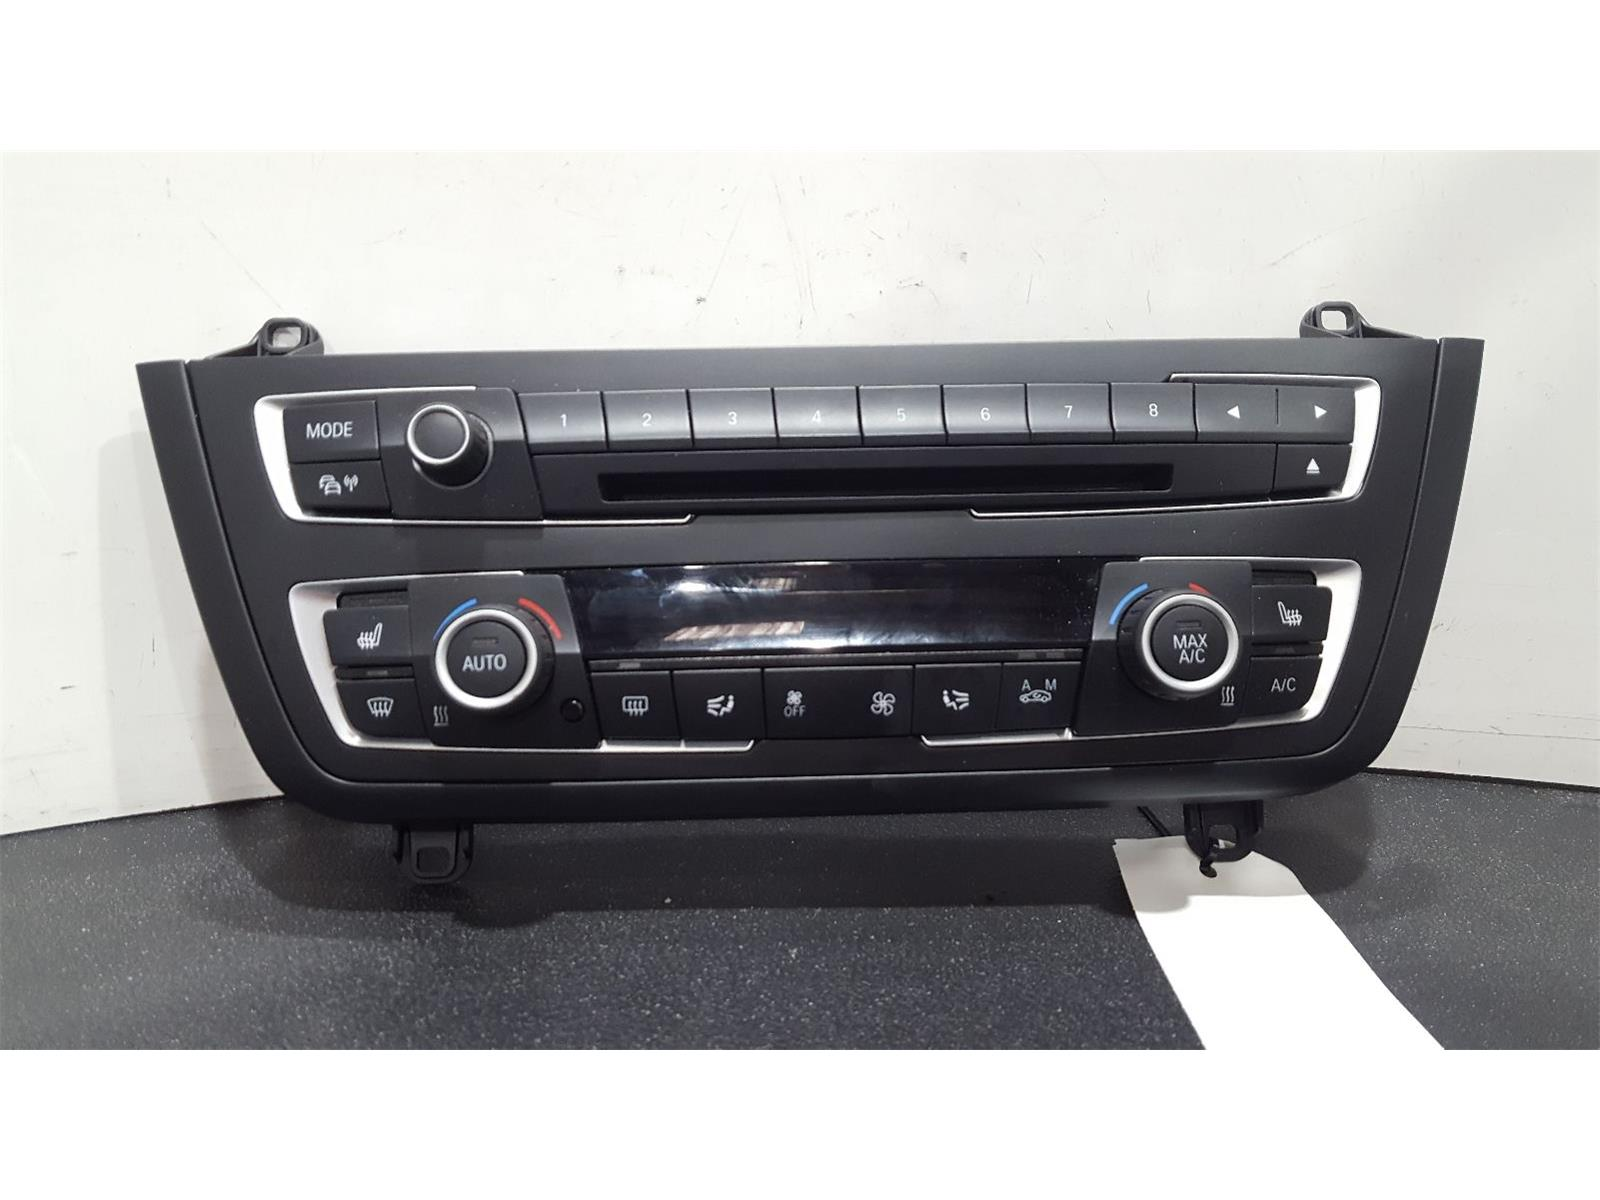 BMW 3 Series 2012 To 2015 Heater Controls 2014 9323554-02